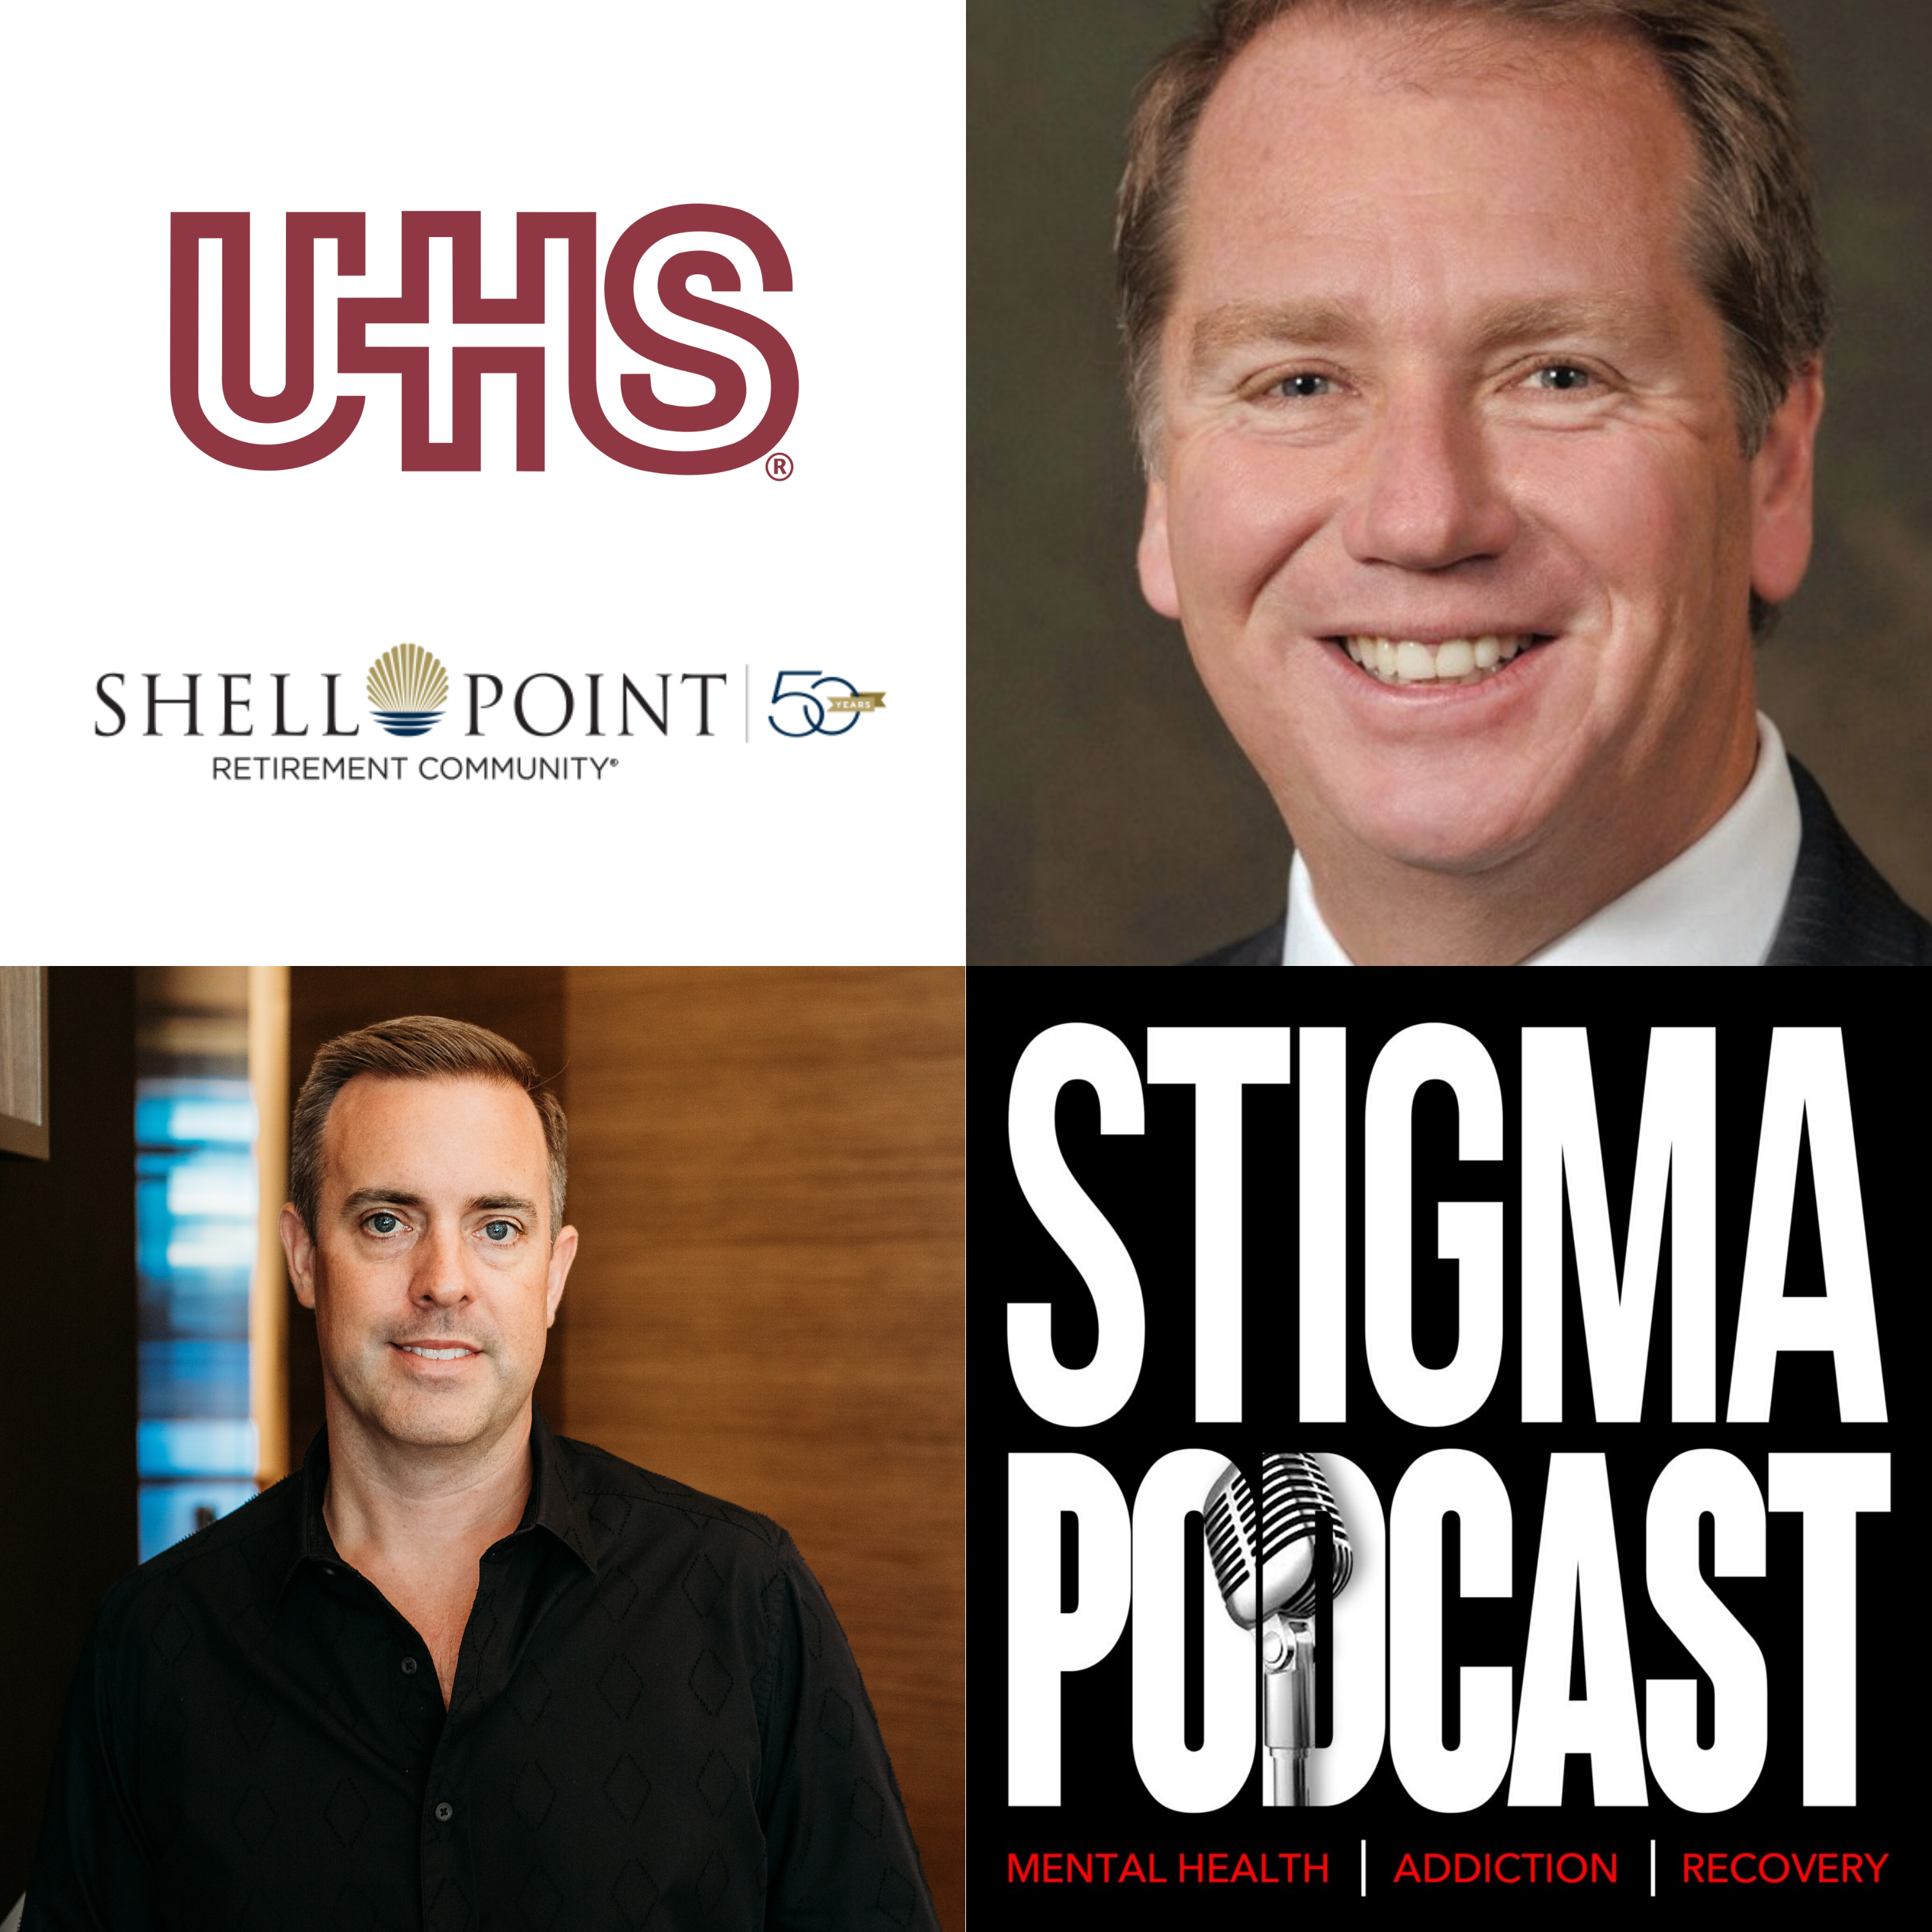 Stigma Podcast - Mental Health - #59 - Former Universal Health Services Executive on The Behavioral Health Industry Evolution